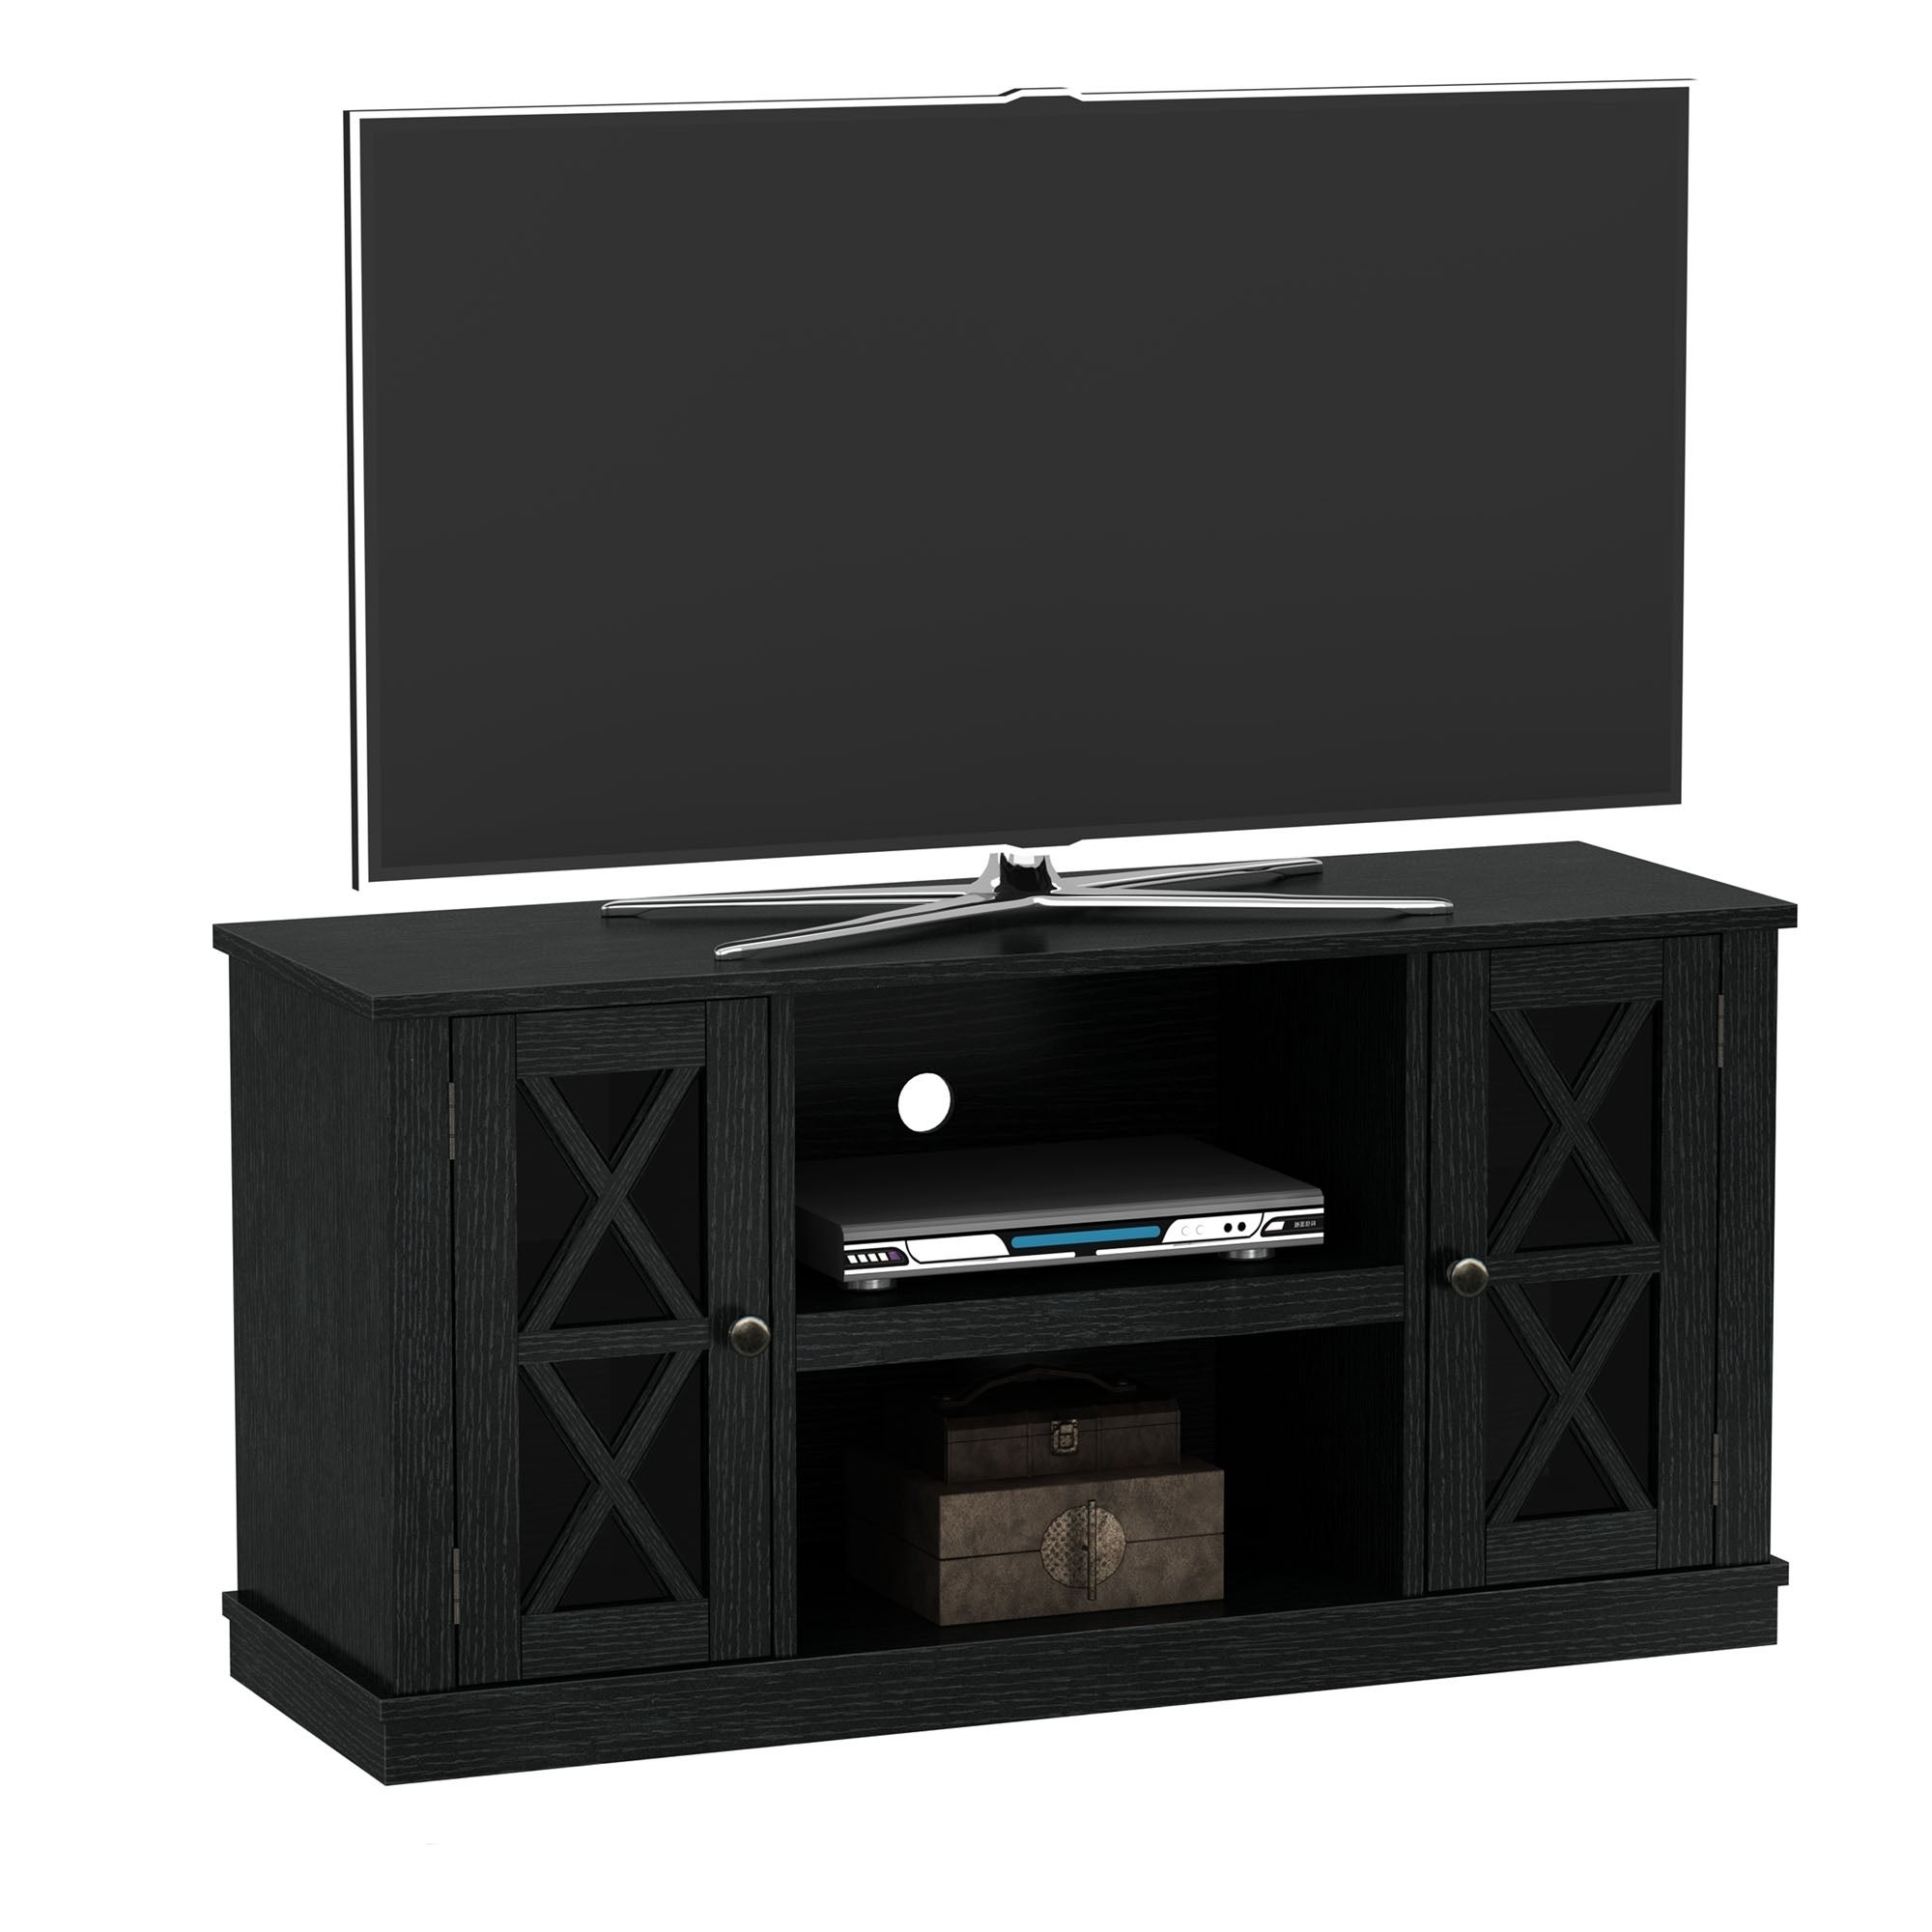 Shop Bayport Tv Stand For Tvs Up To 55 Inches Black Free Shipping